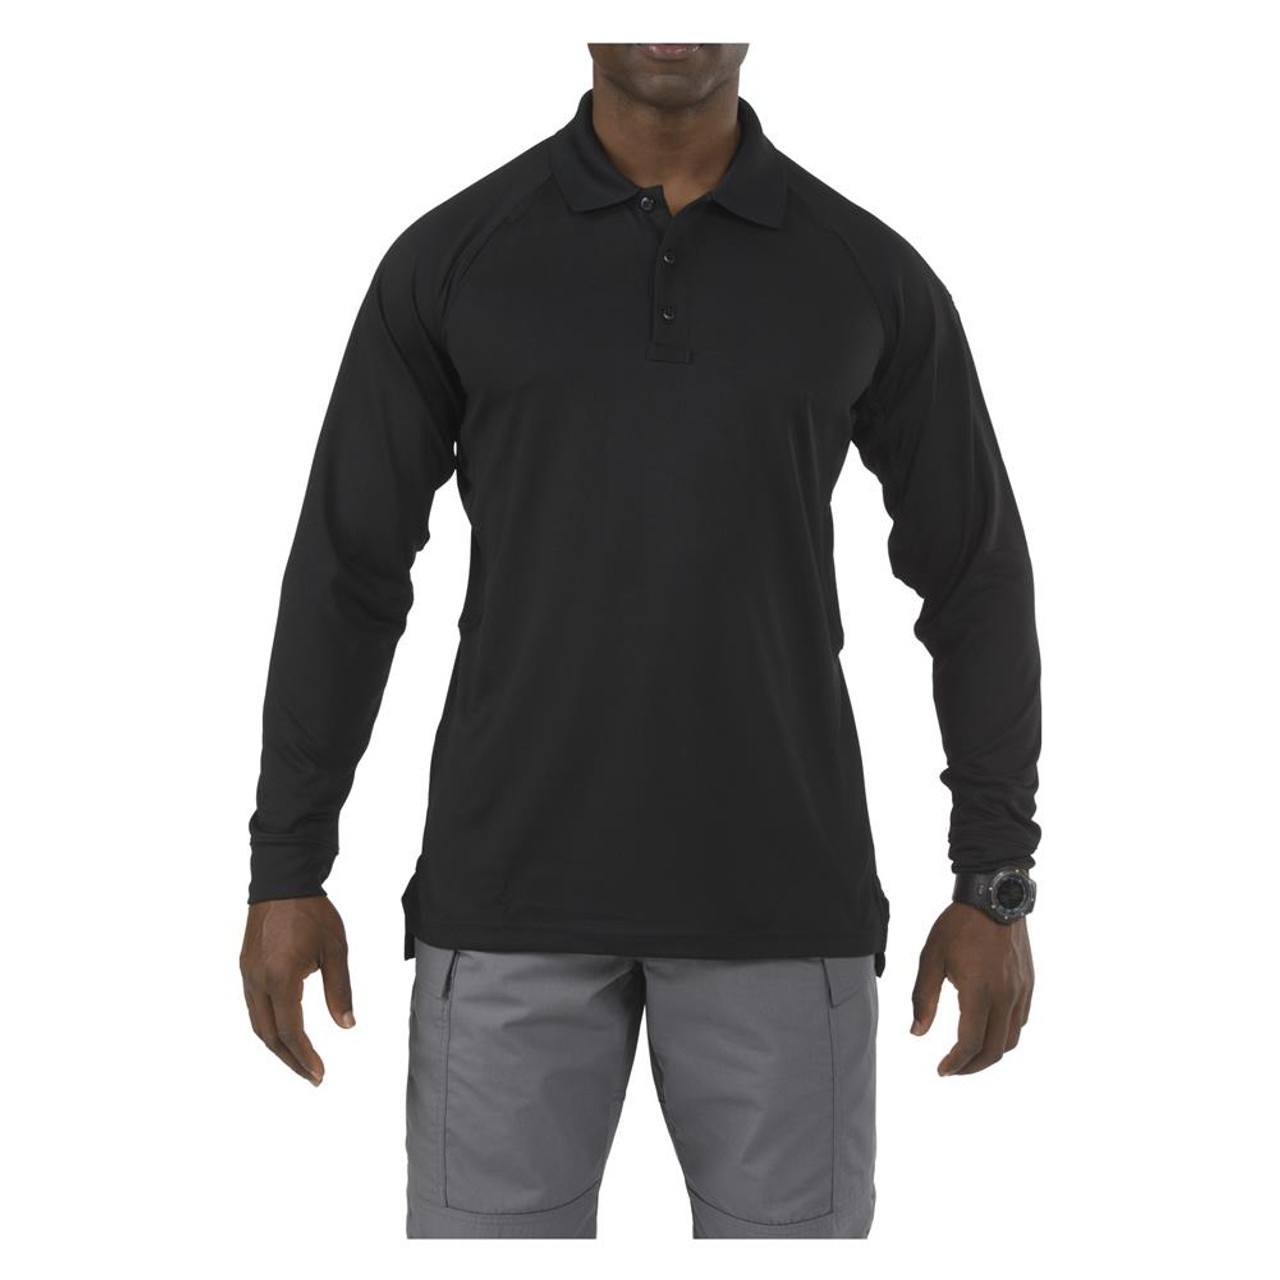 9b1a05dd8 5.11 Tactical Performance Polo - Short Sleeve, Synthetic Knit